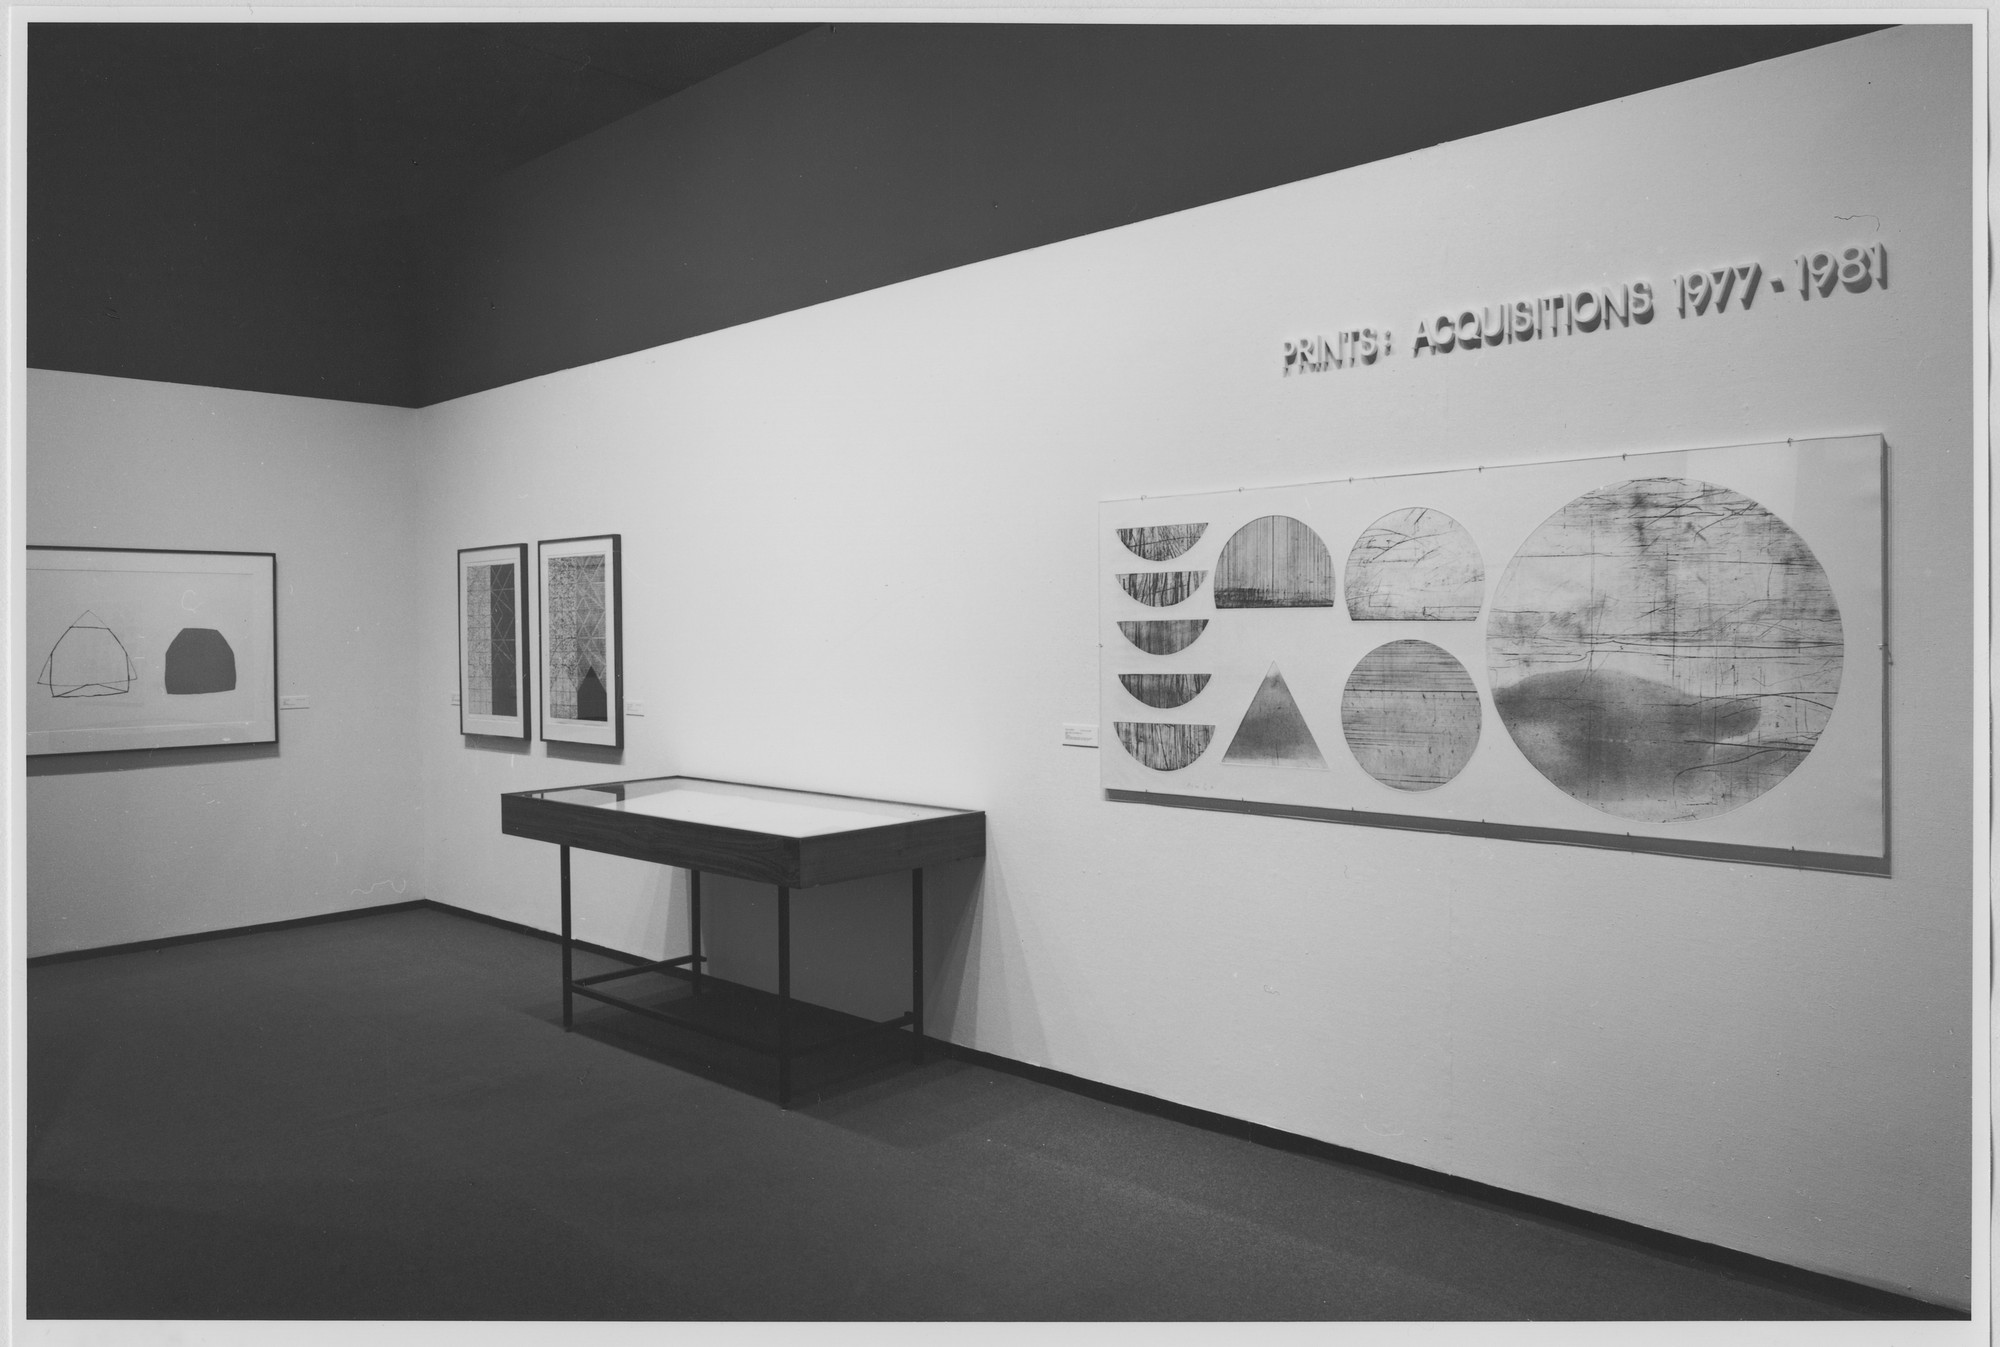 "Installation view of the exhibition, ""Prints: Acquisitions 1977-81"" October 15, 1981–January 3, 1982. Photographic Archive. The Museum of Modern Art Archives, New York. IN1324.1. Photograph by Mali Olatunji."